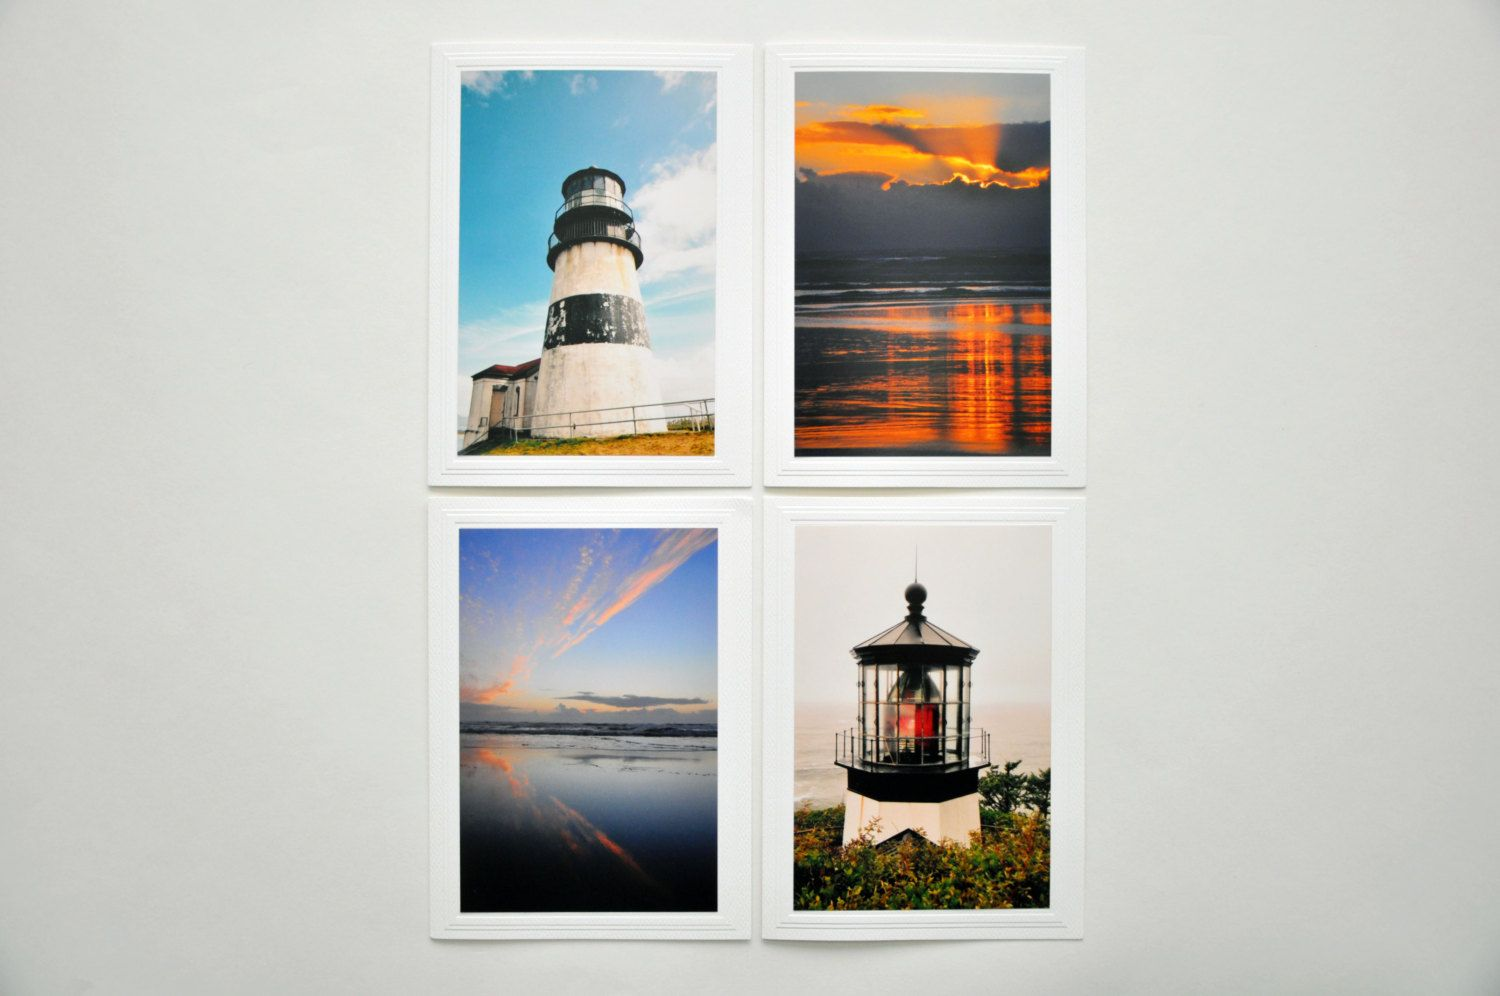 Pacific coast card set i cape disappointment lighthouse benson pacific coast card set i cape disappointment lighthouse benson beach cape meares lighthouse special occasion greeting cards made in usa kristyandbryce Choice Image